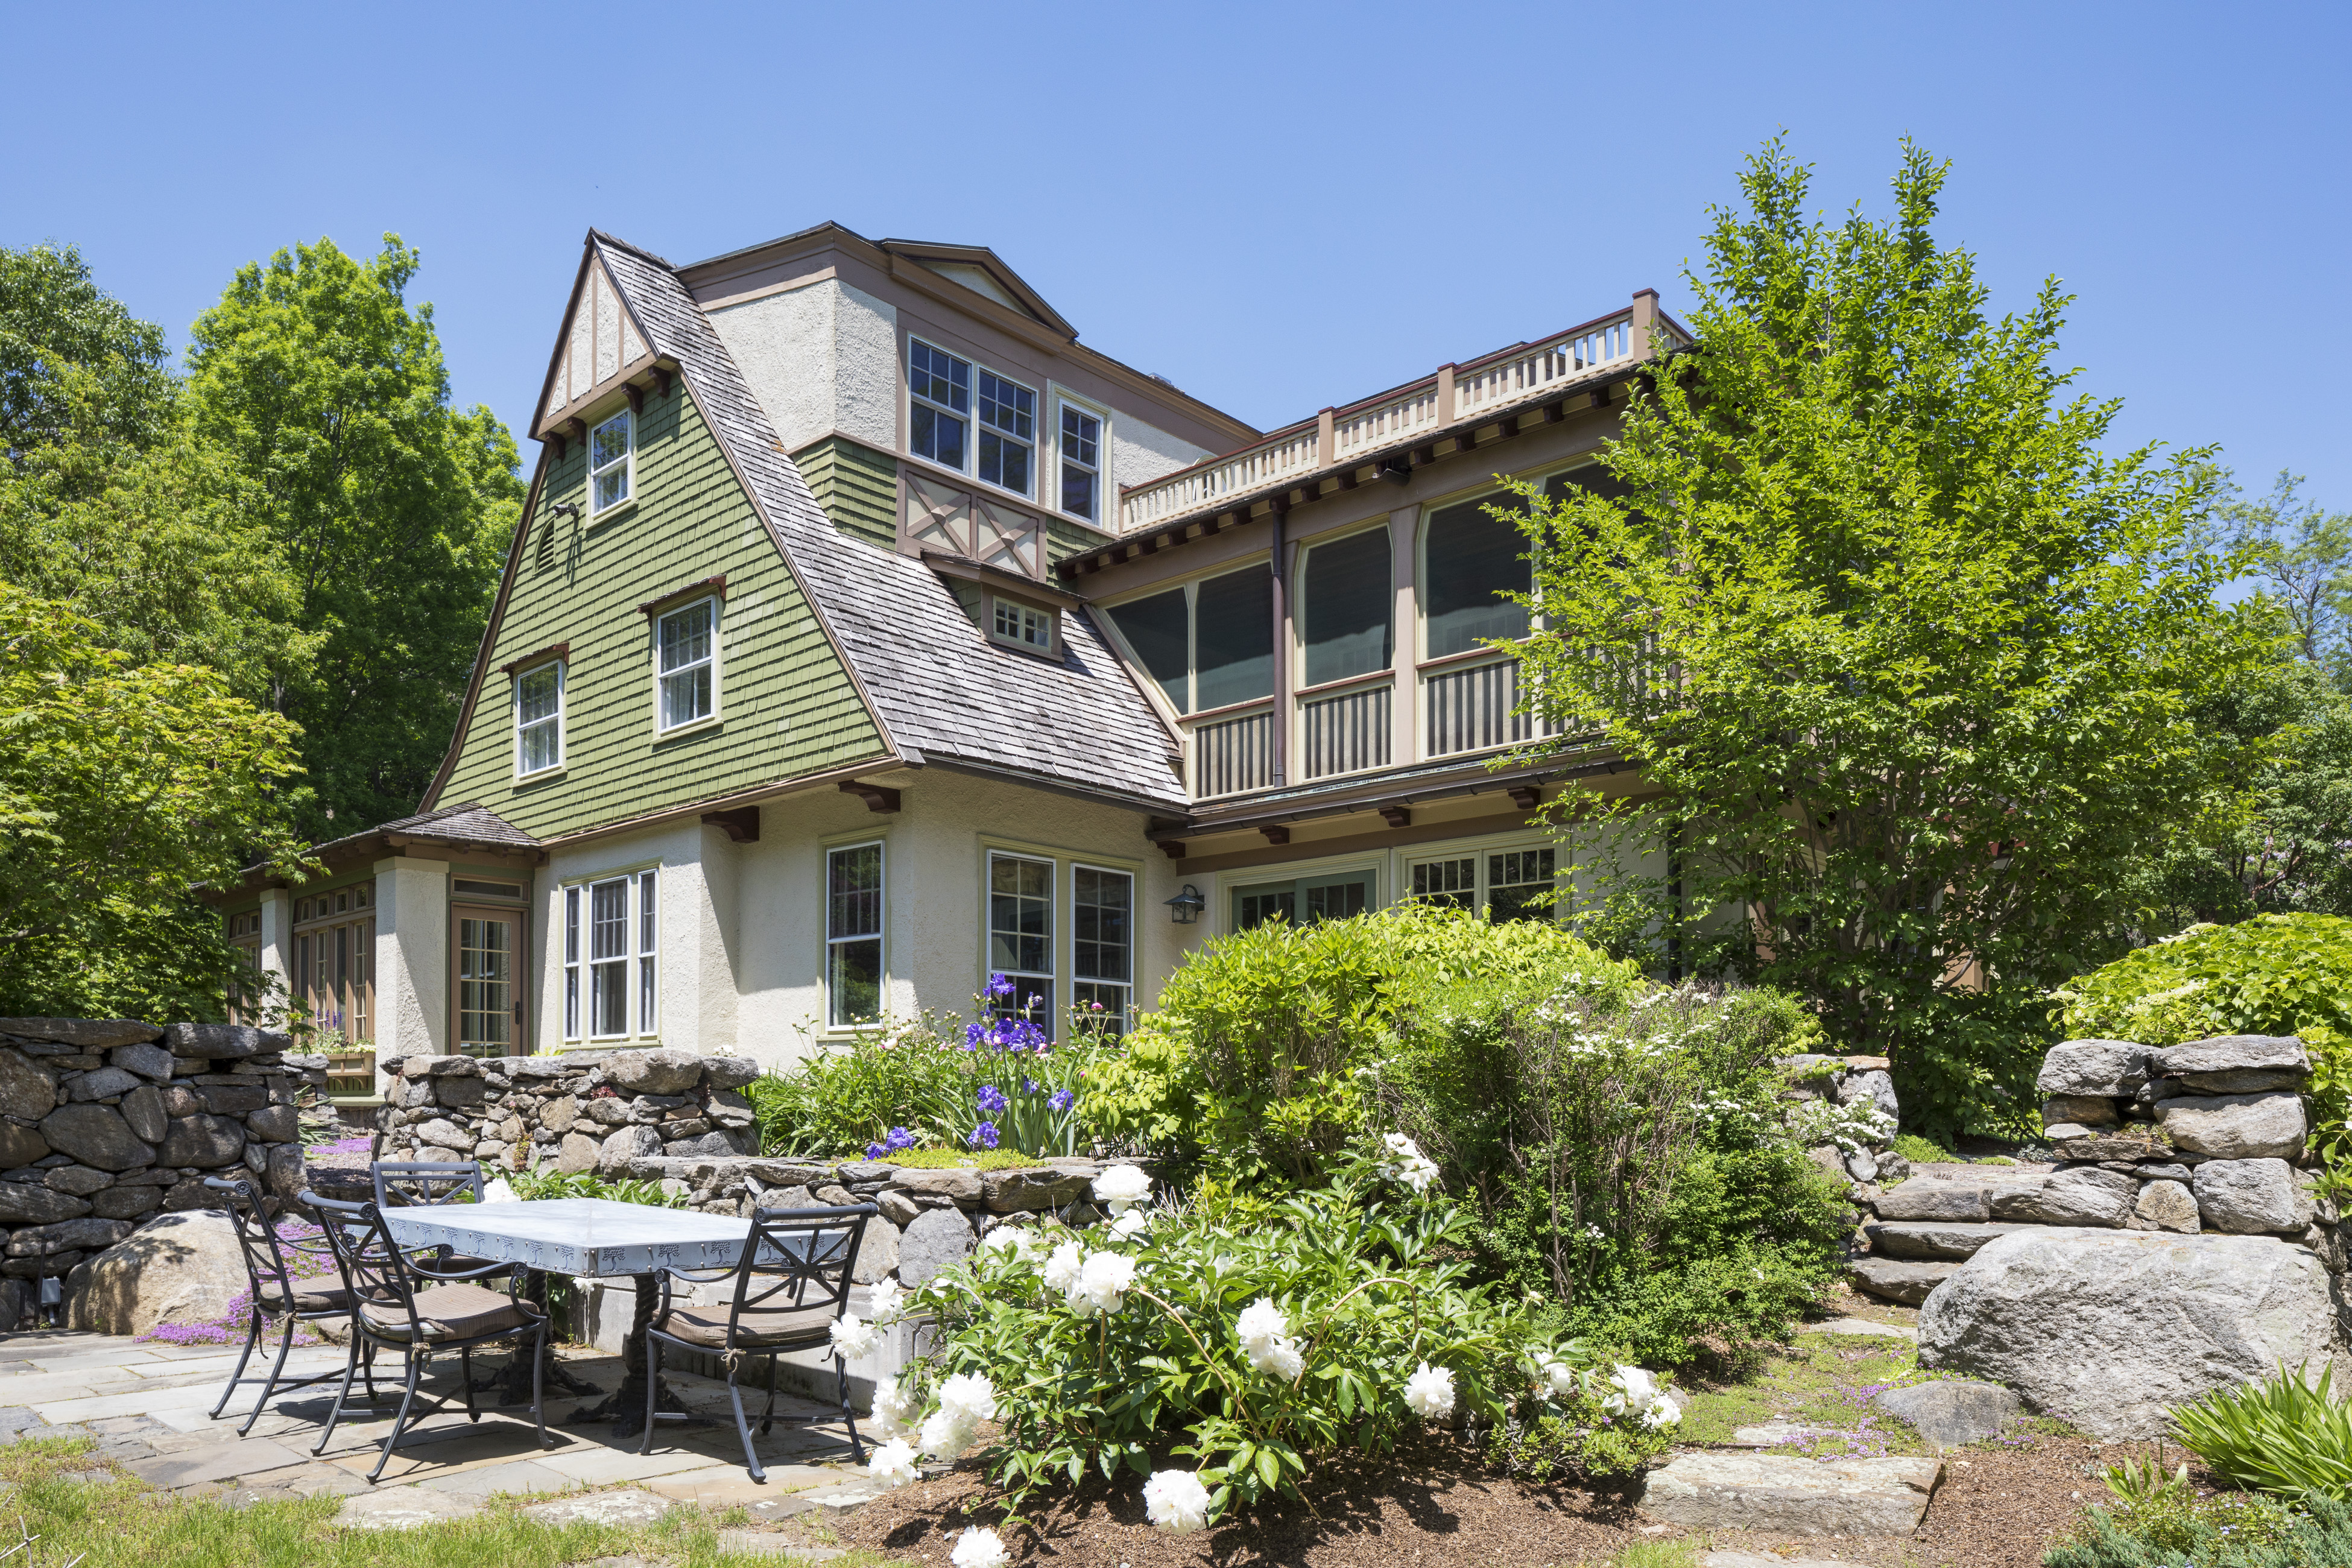 Here's what kind of home about $3 million buys you in the burbs